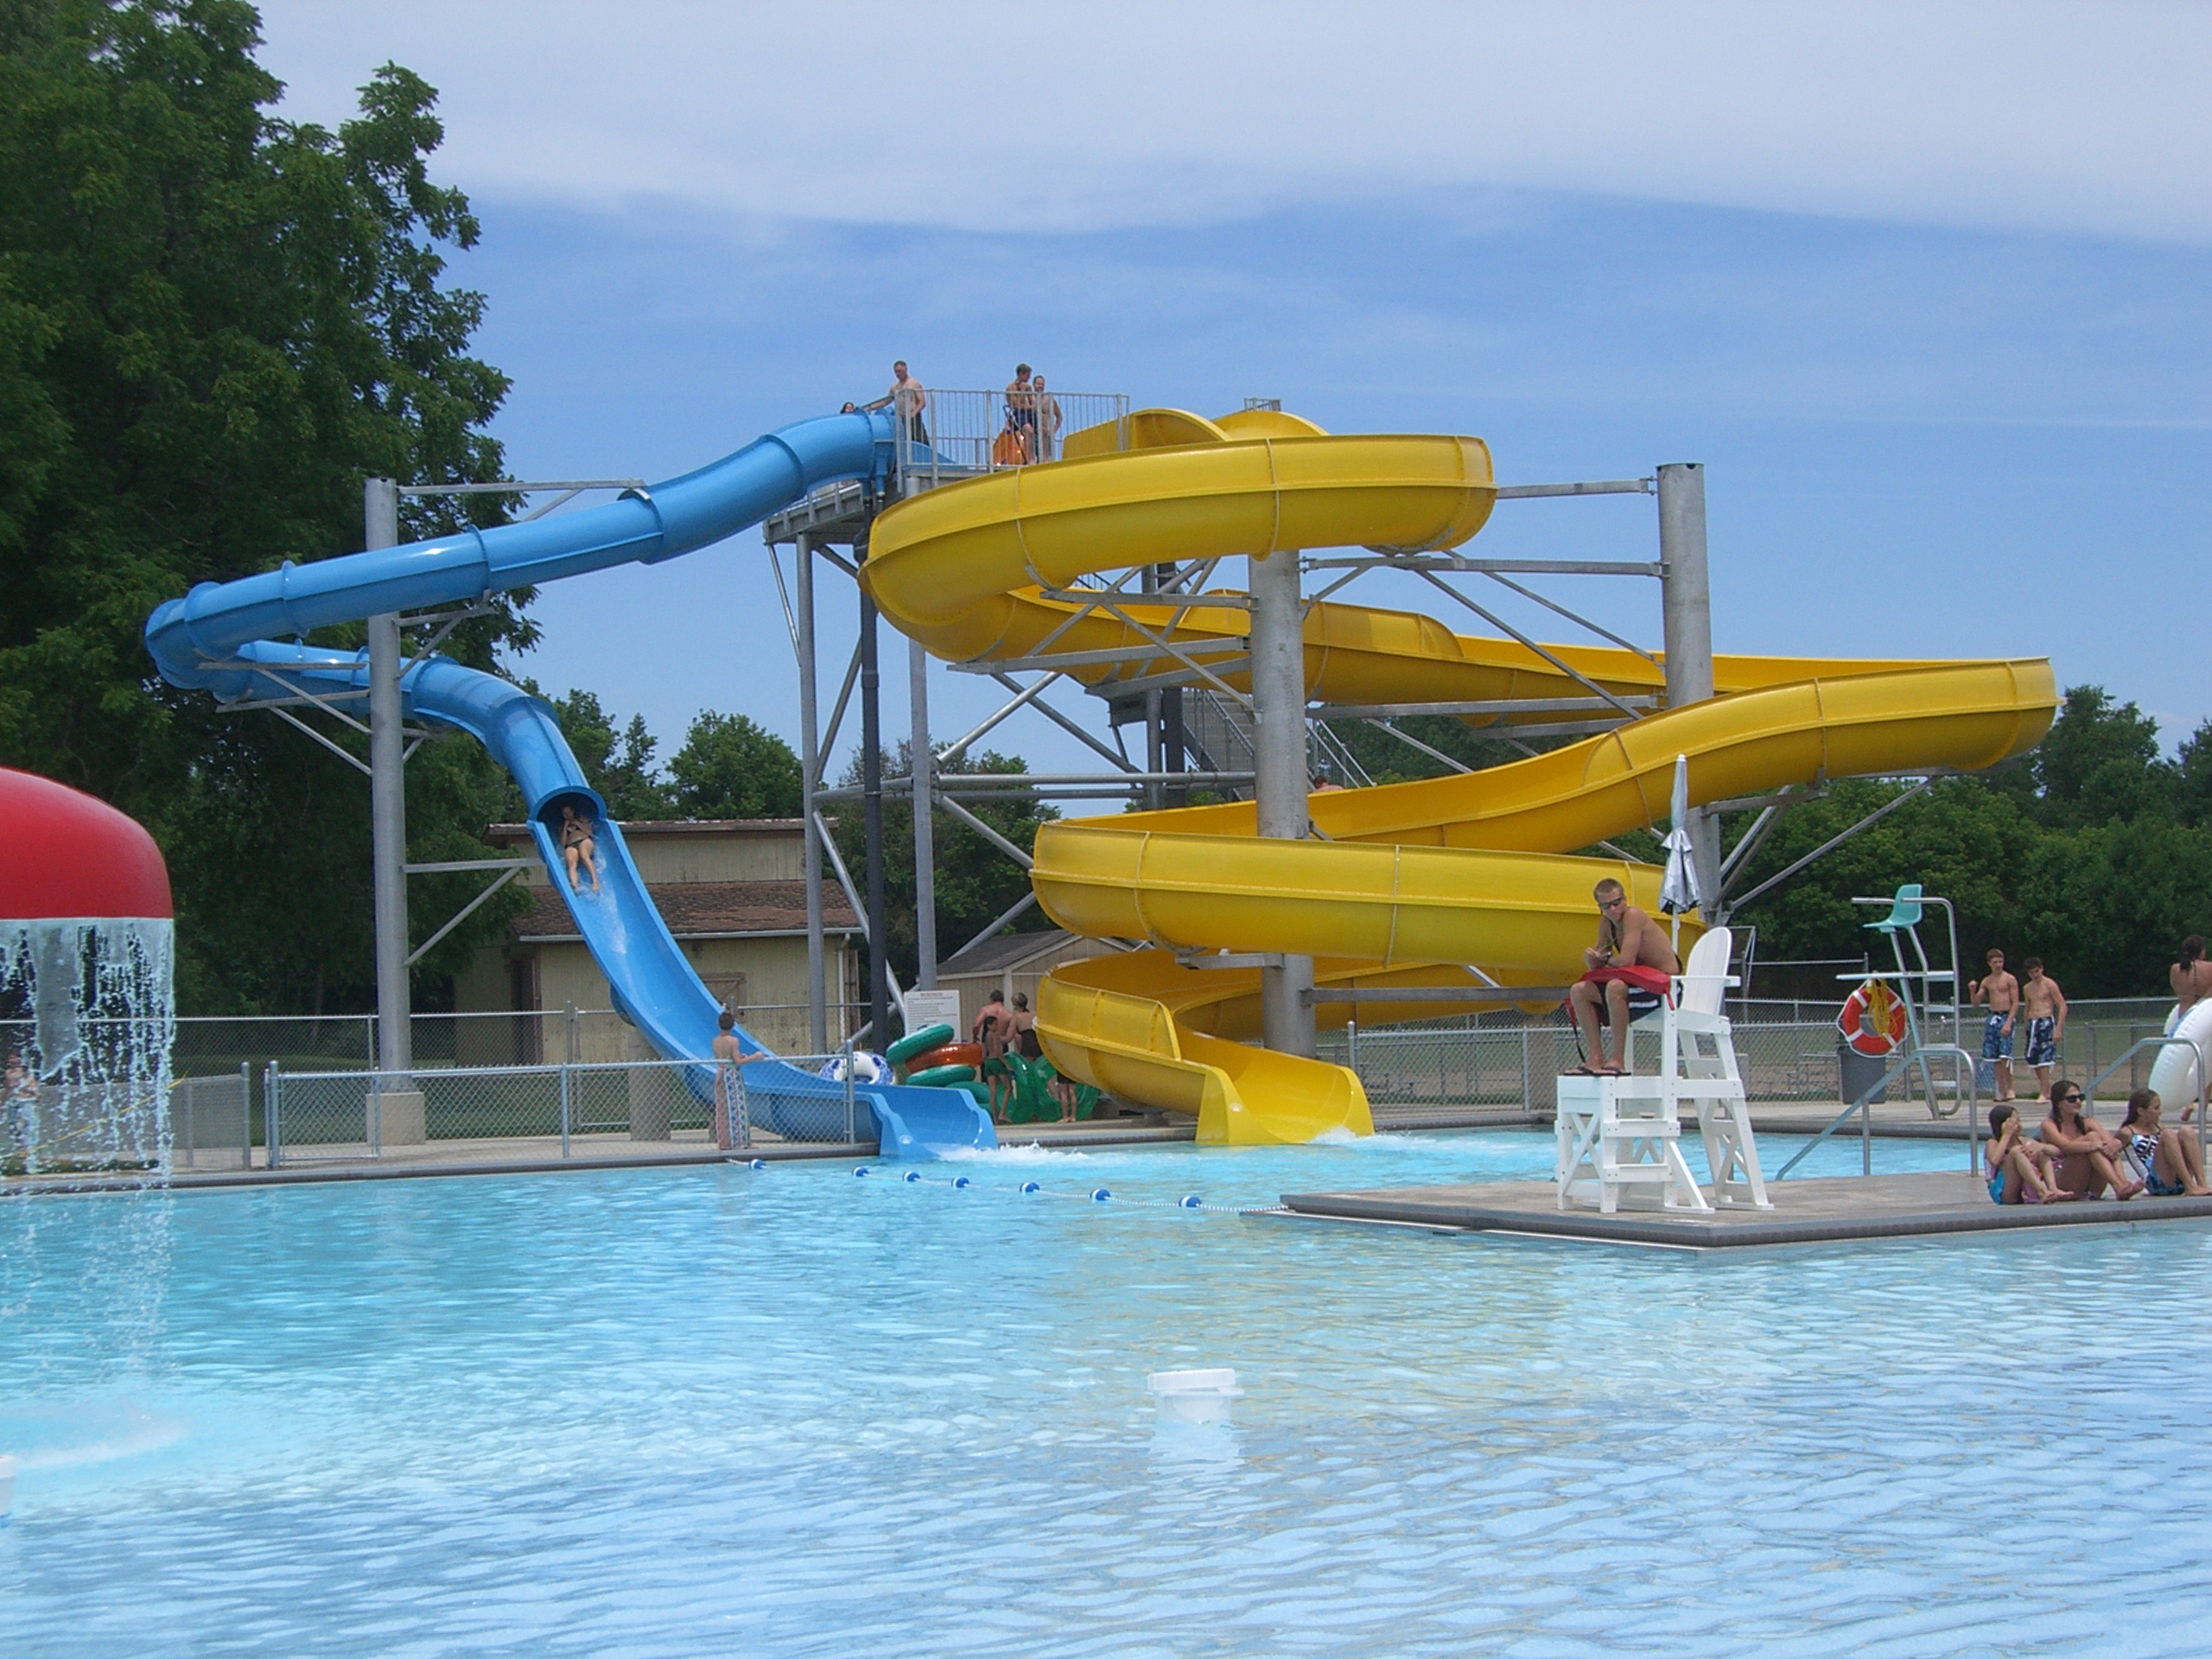 Mount Vernon Ohio Water Park photo by Sam Miller